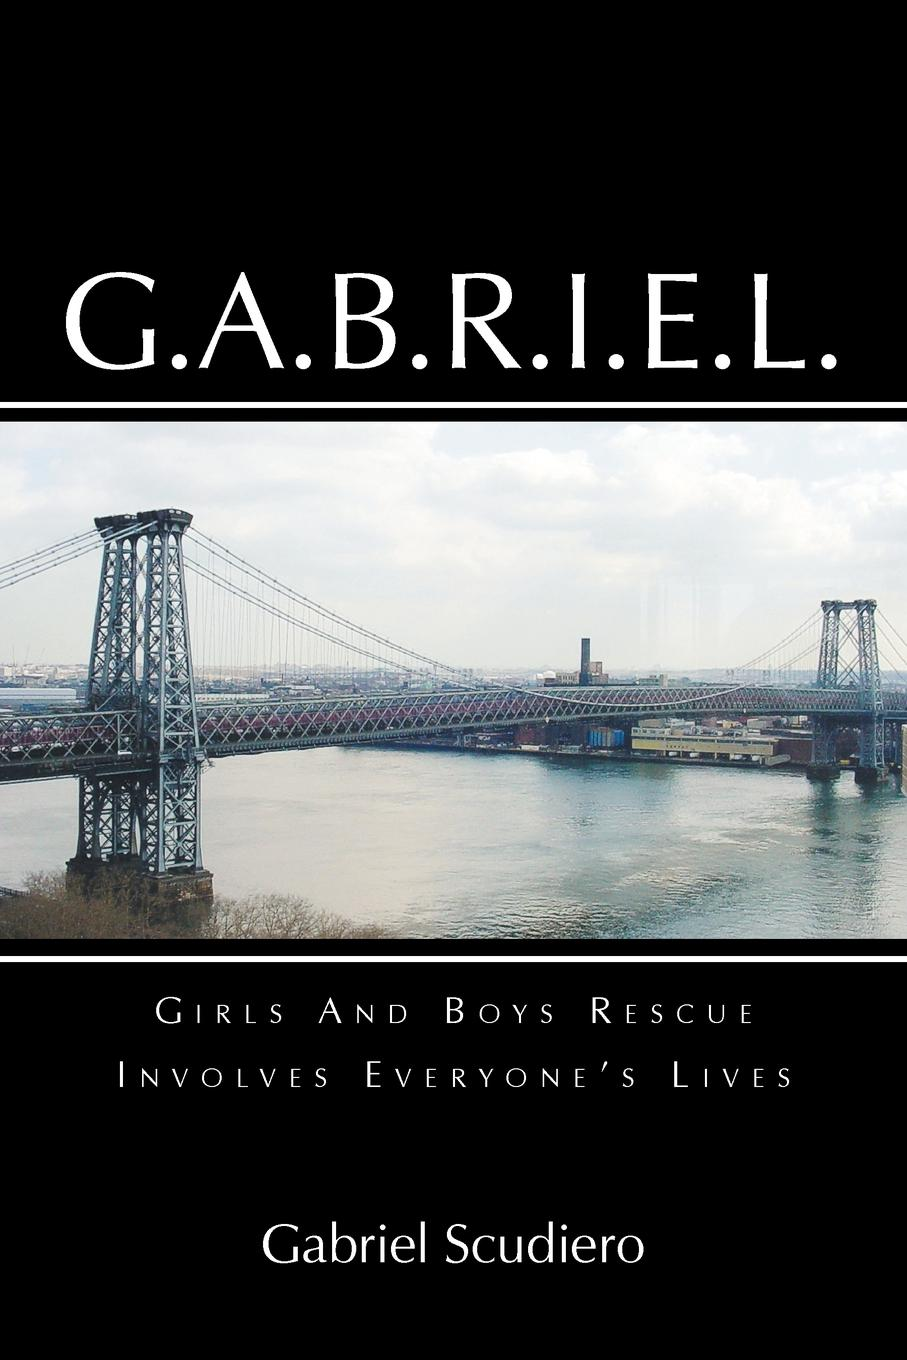 Gabriel Scudiero G.A.B.R.I.E.L. Girls and Boys Rescue Involves Everyone.s Lives